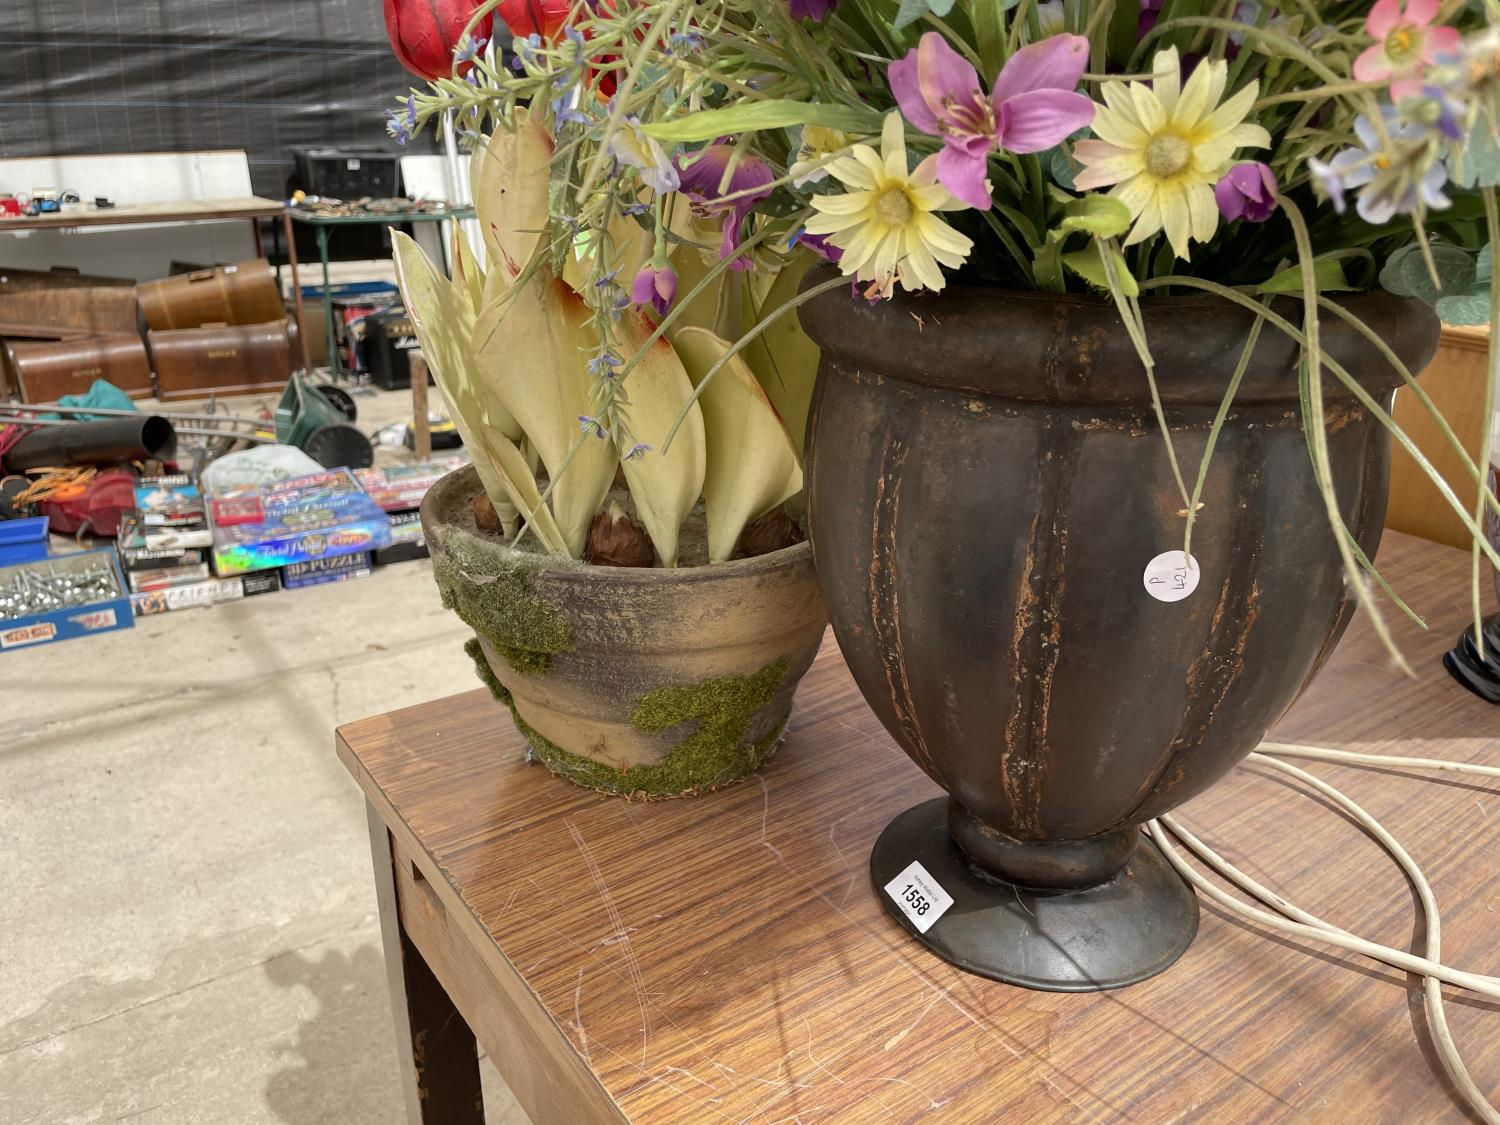 A VASE AND A PLANT POT CONTAINING ARTIFICIAL FLOWERS - Image 6 of 6